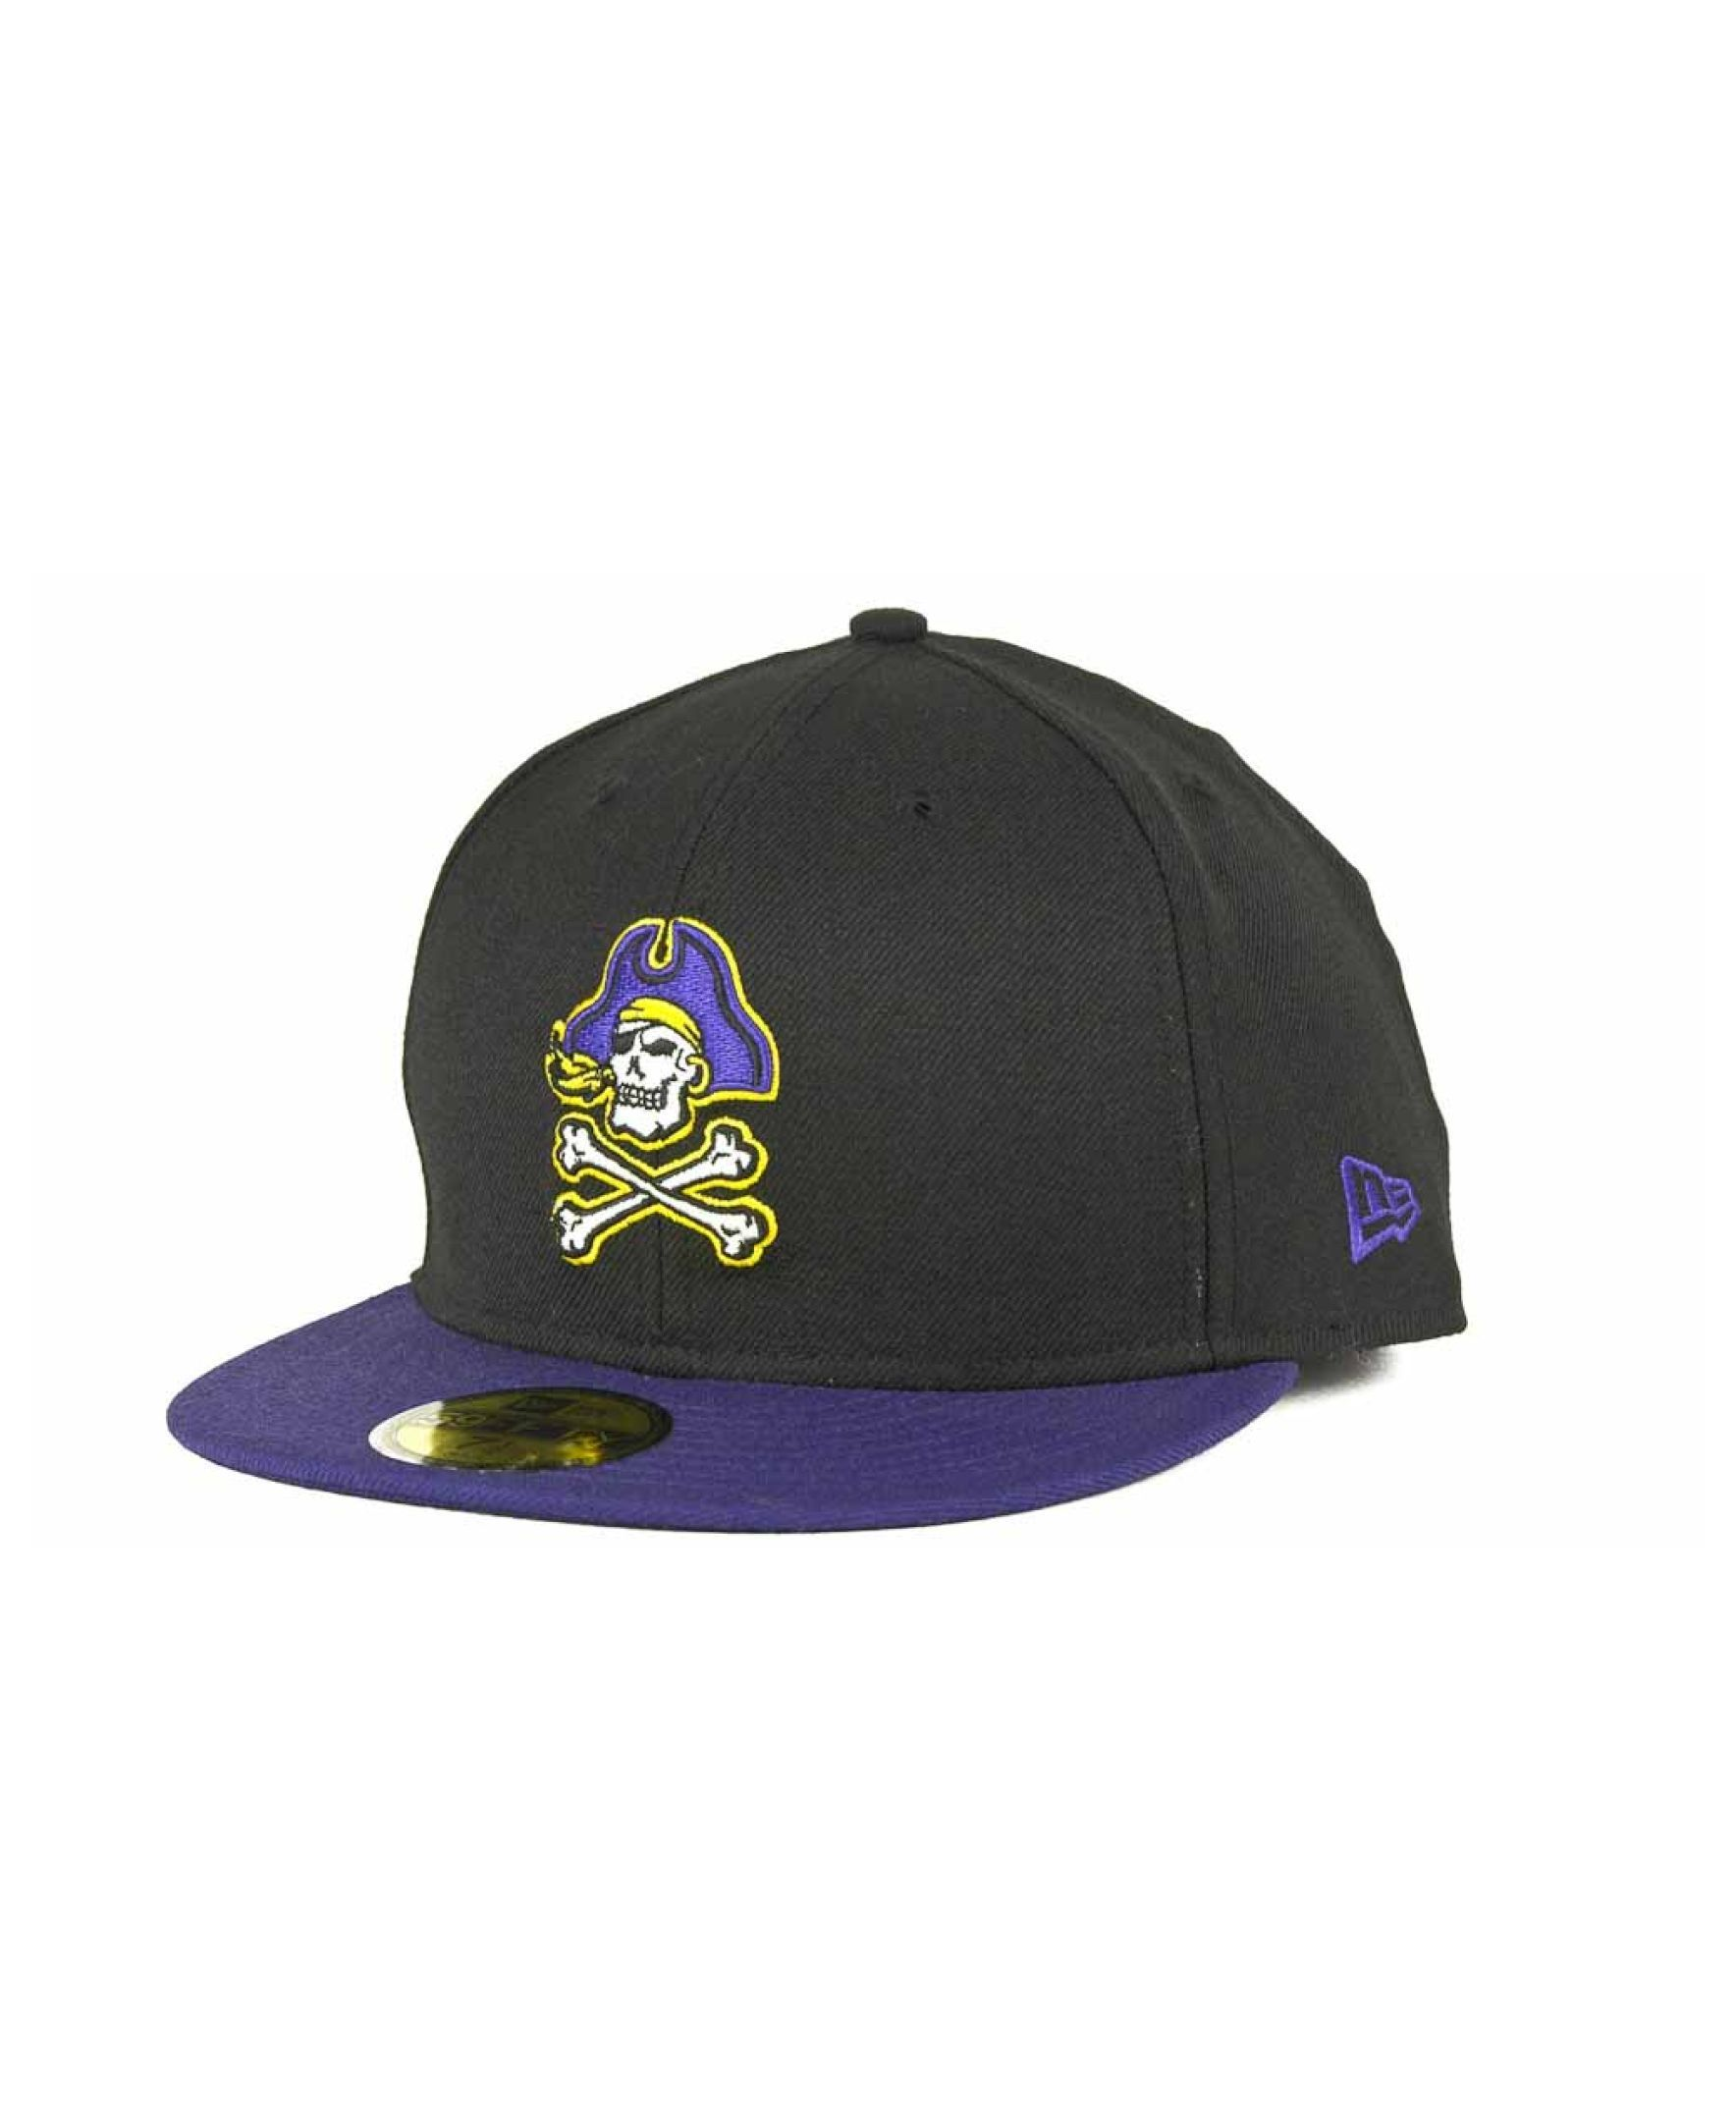 sale retailer 05e78 9395c New Era Cal State Fullerton Titans 59FIFTY Cap - Blue 7 3 8 in 2019    Products   Cal state, Cap, Baseball hats